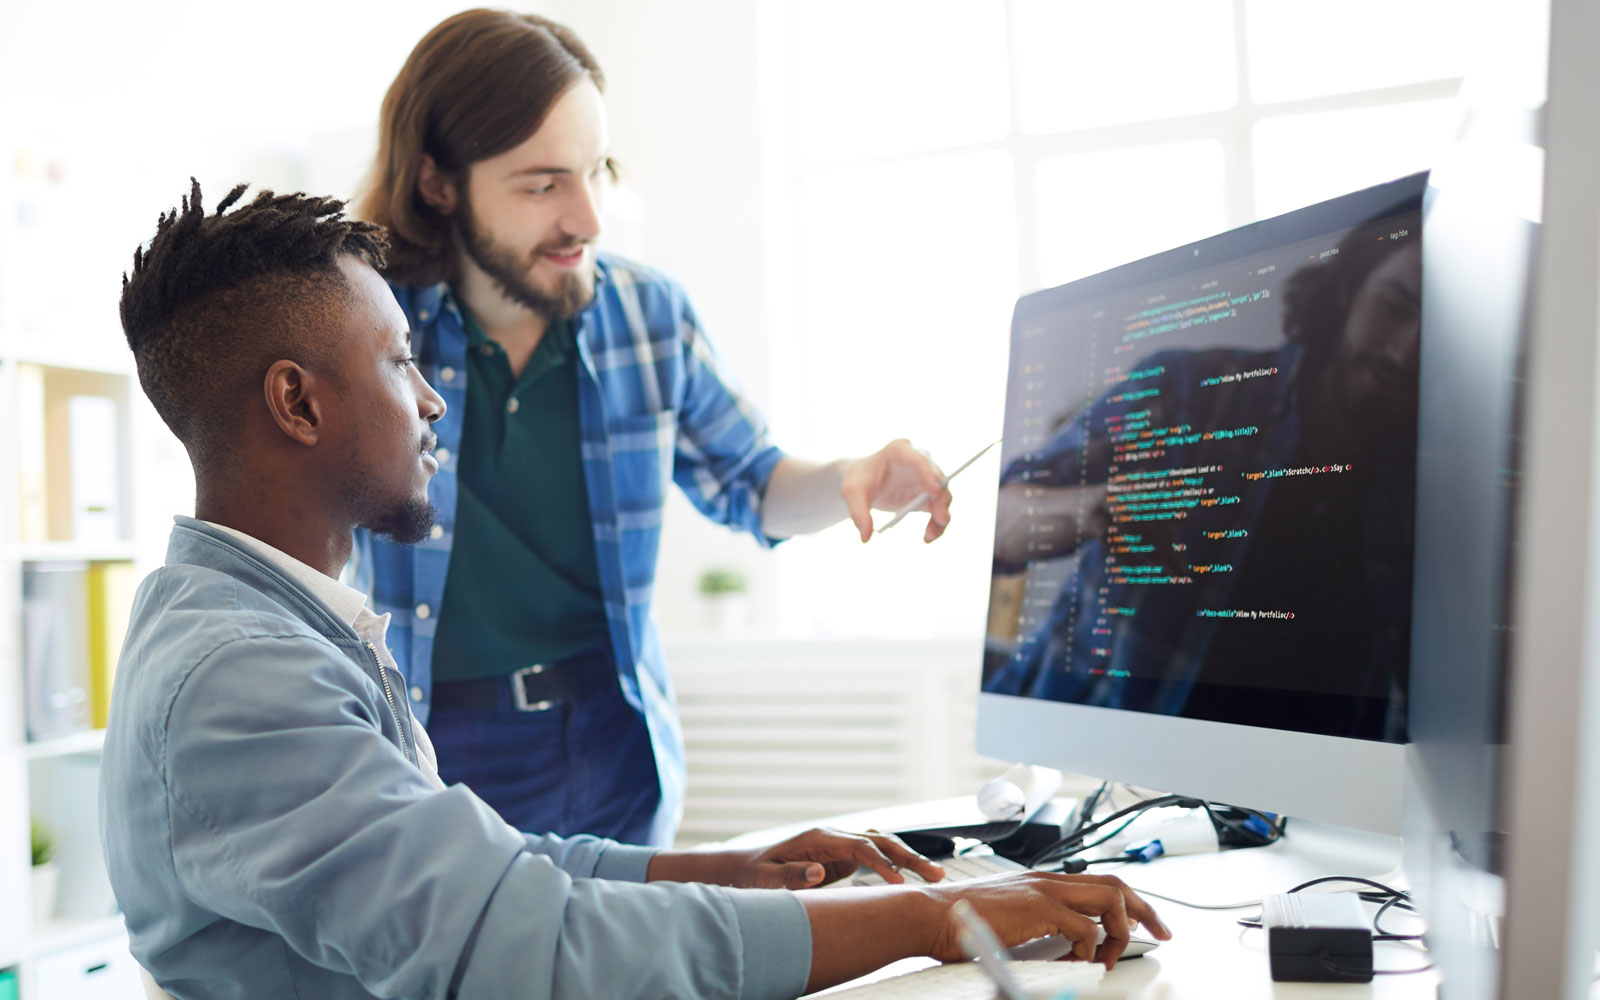 Two DevOps programmers looking at computer code